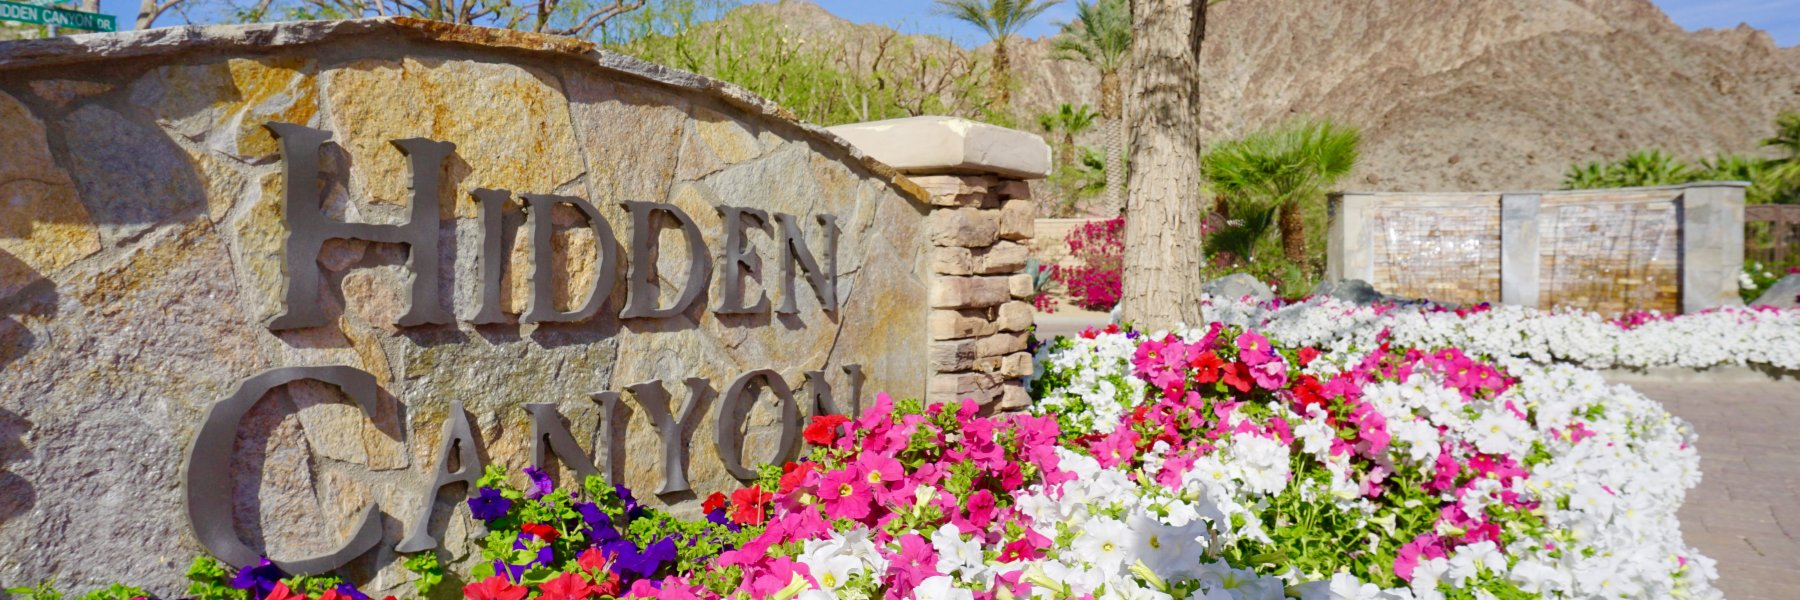 Hidden Canyon is a community of homes in La Quinta California